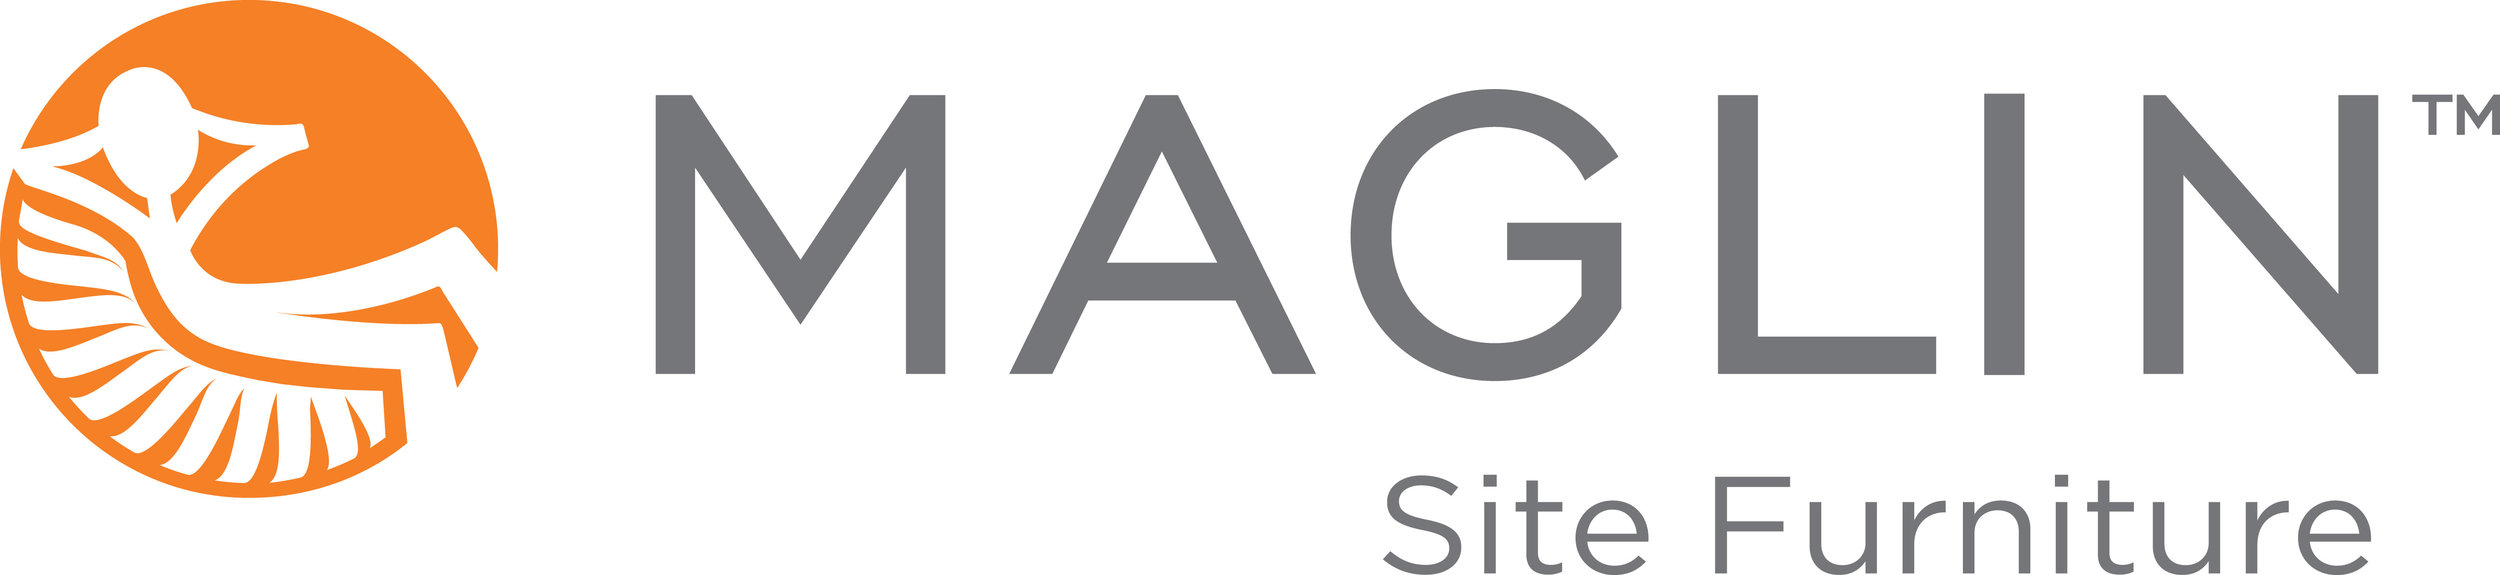 Maglin_Site_Furniture_Logo_EN_RGB.jpg